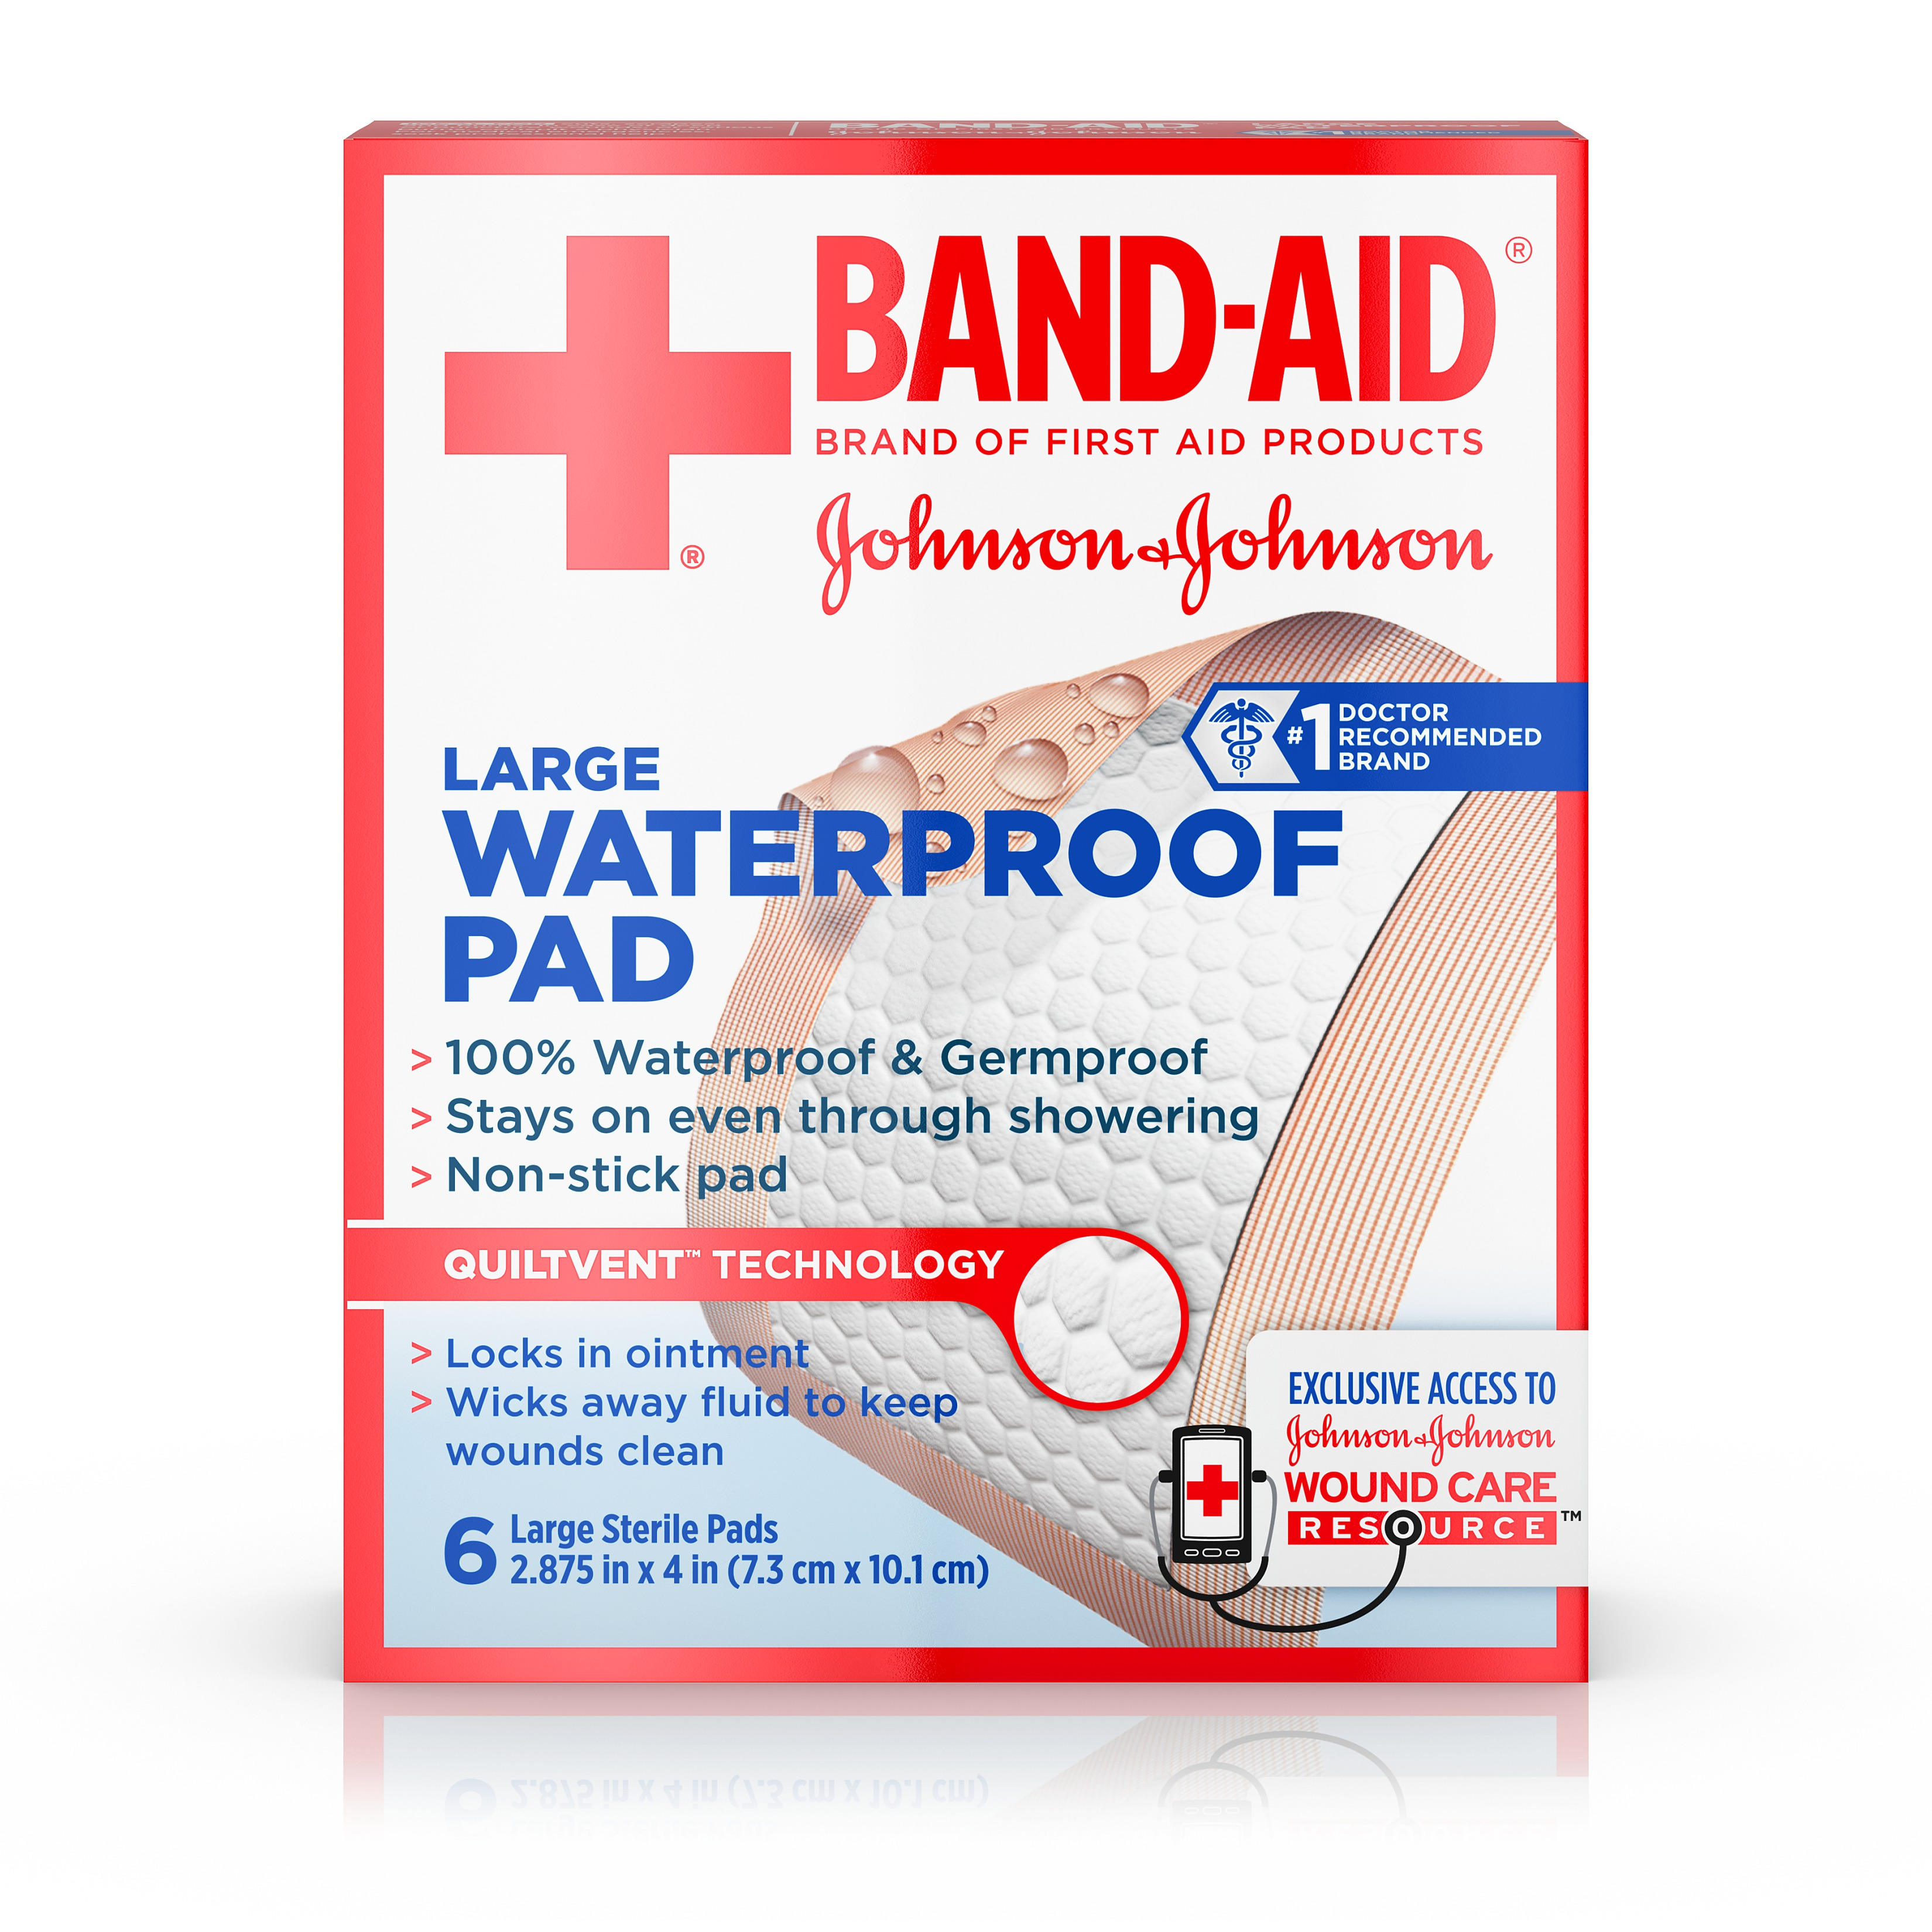 Click here to buy BAND-AID Brand of First Aid Products Waterproof Pads, for Minor Cut and Scrapes, 2.9 by 4 Inches, 6 Count by Johnson & Johnson.